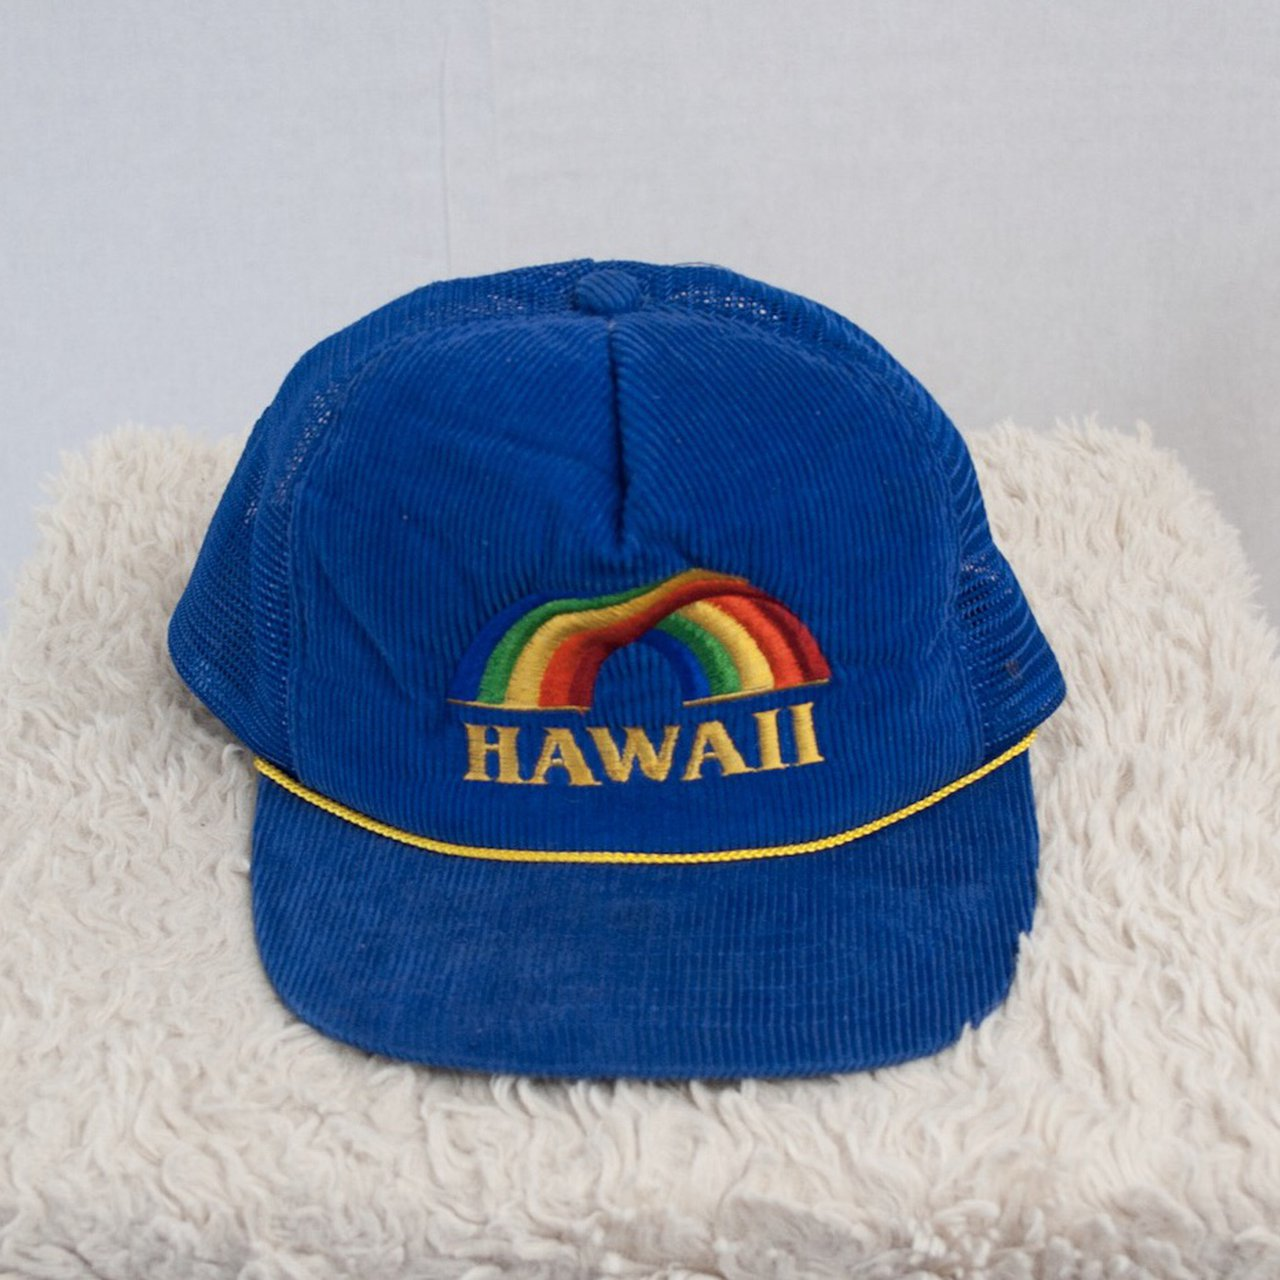 39dbbabe051 Vintage blue corduroy rainbow embroidered Hawaii trucker hat - Depop